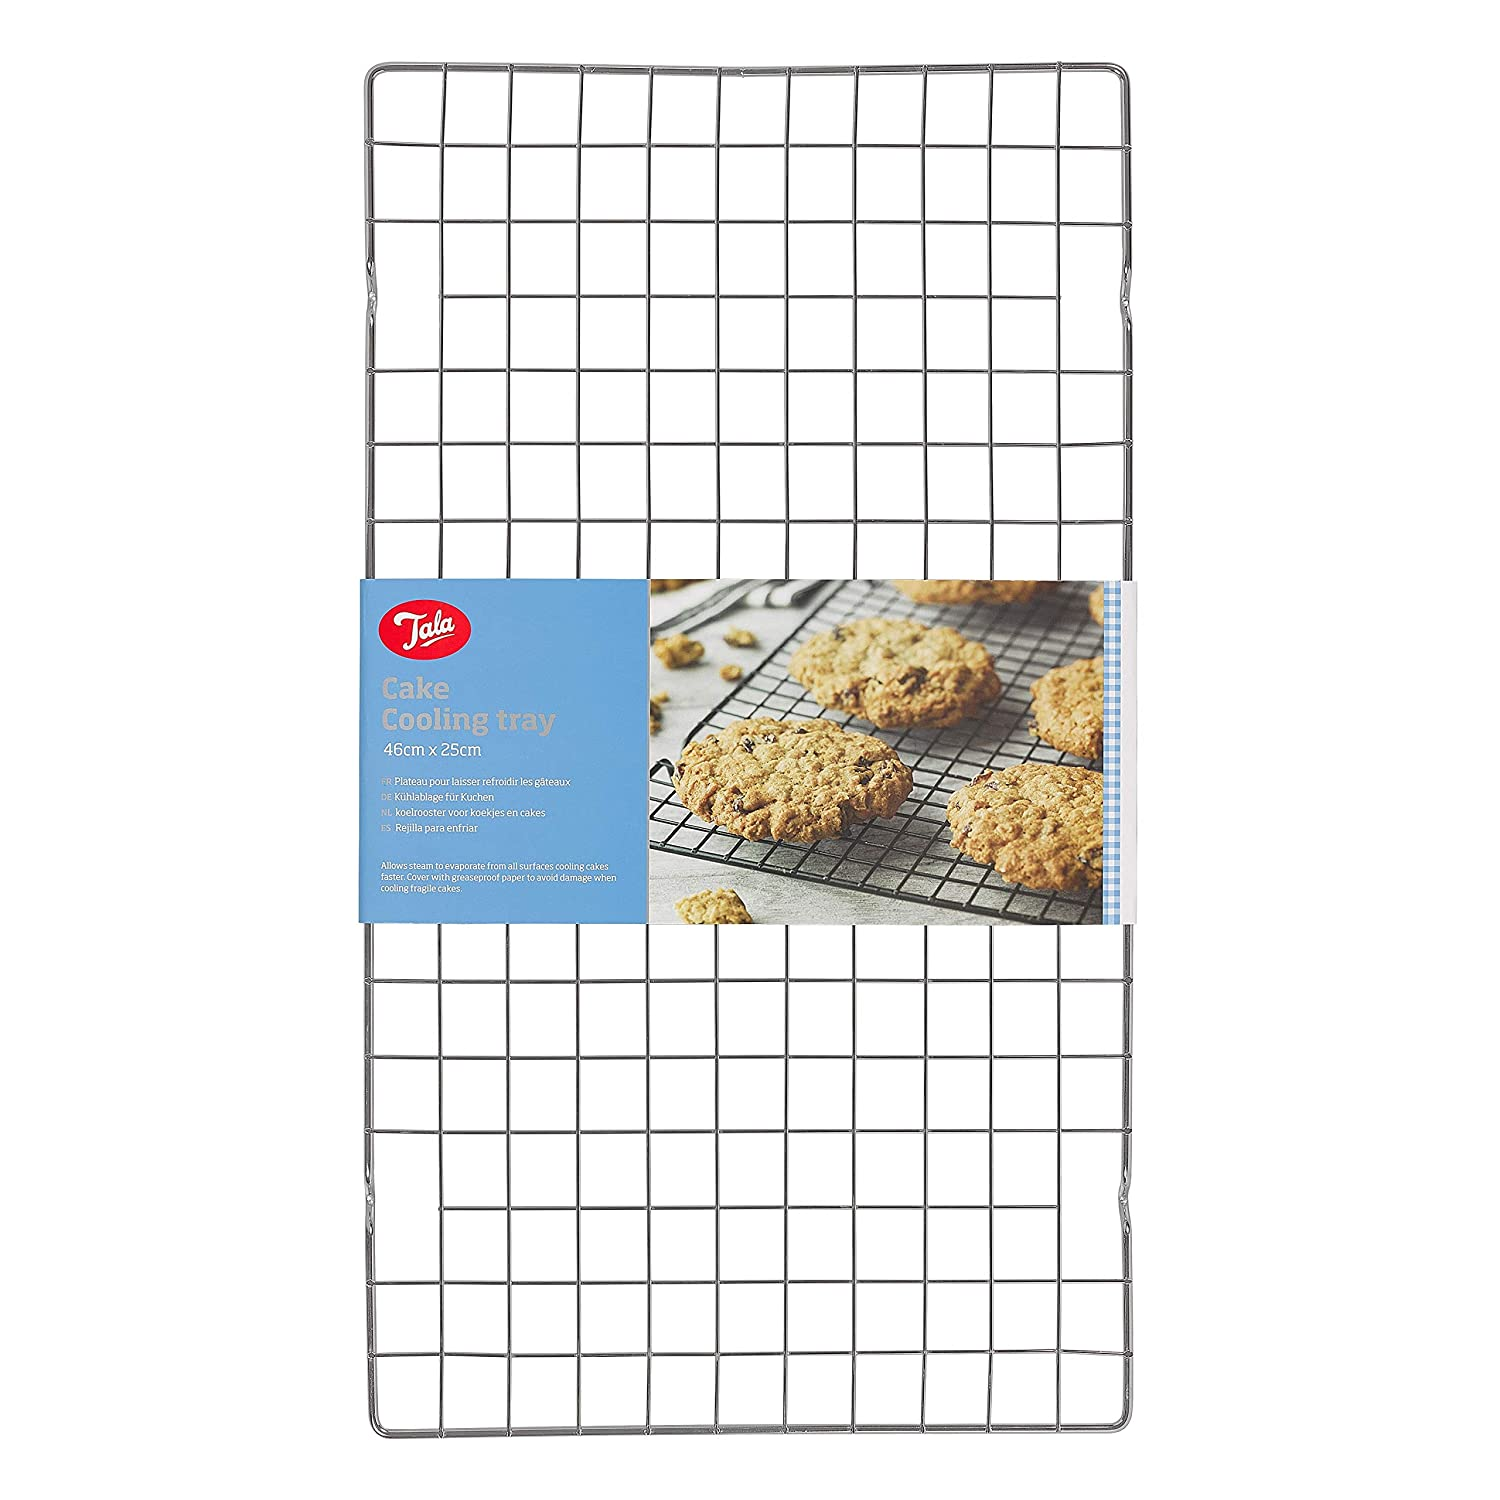 Tala Cake Cooling Rack Set